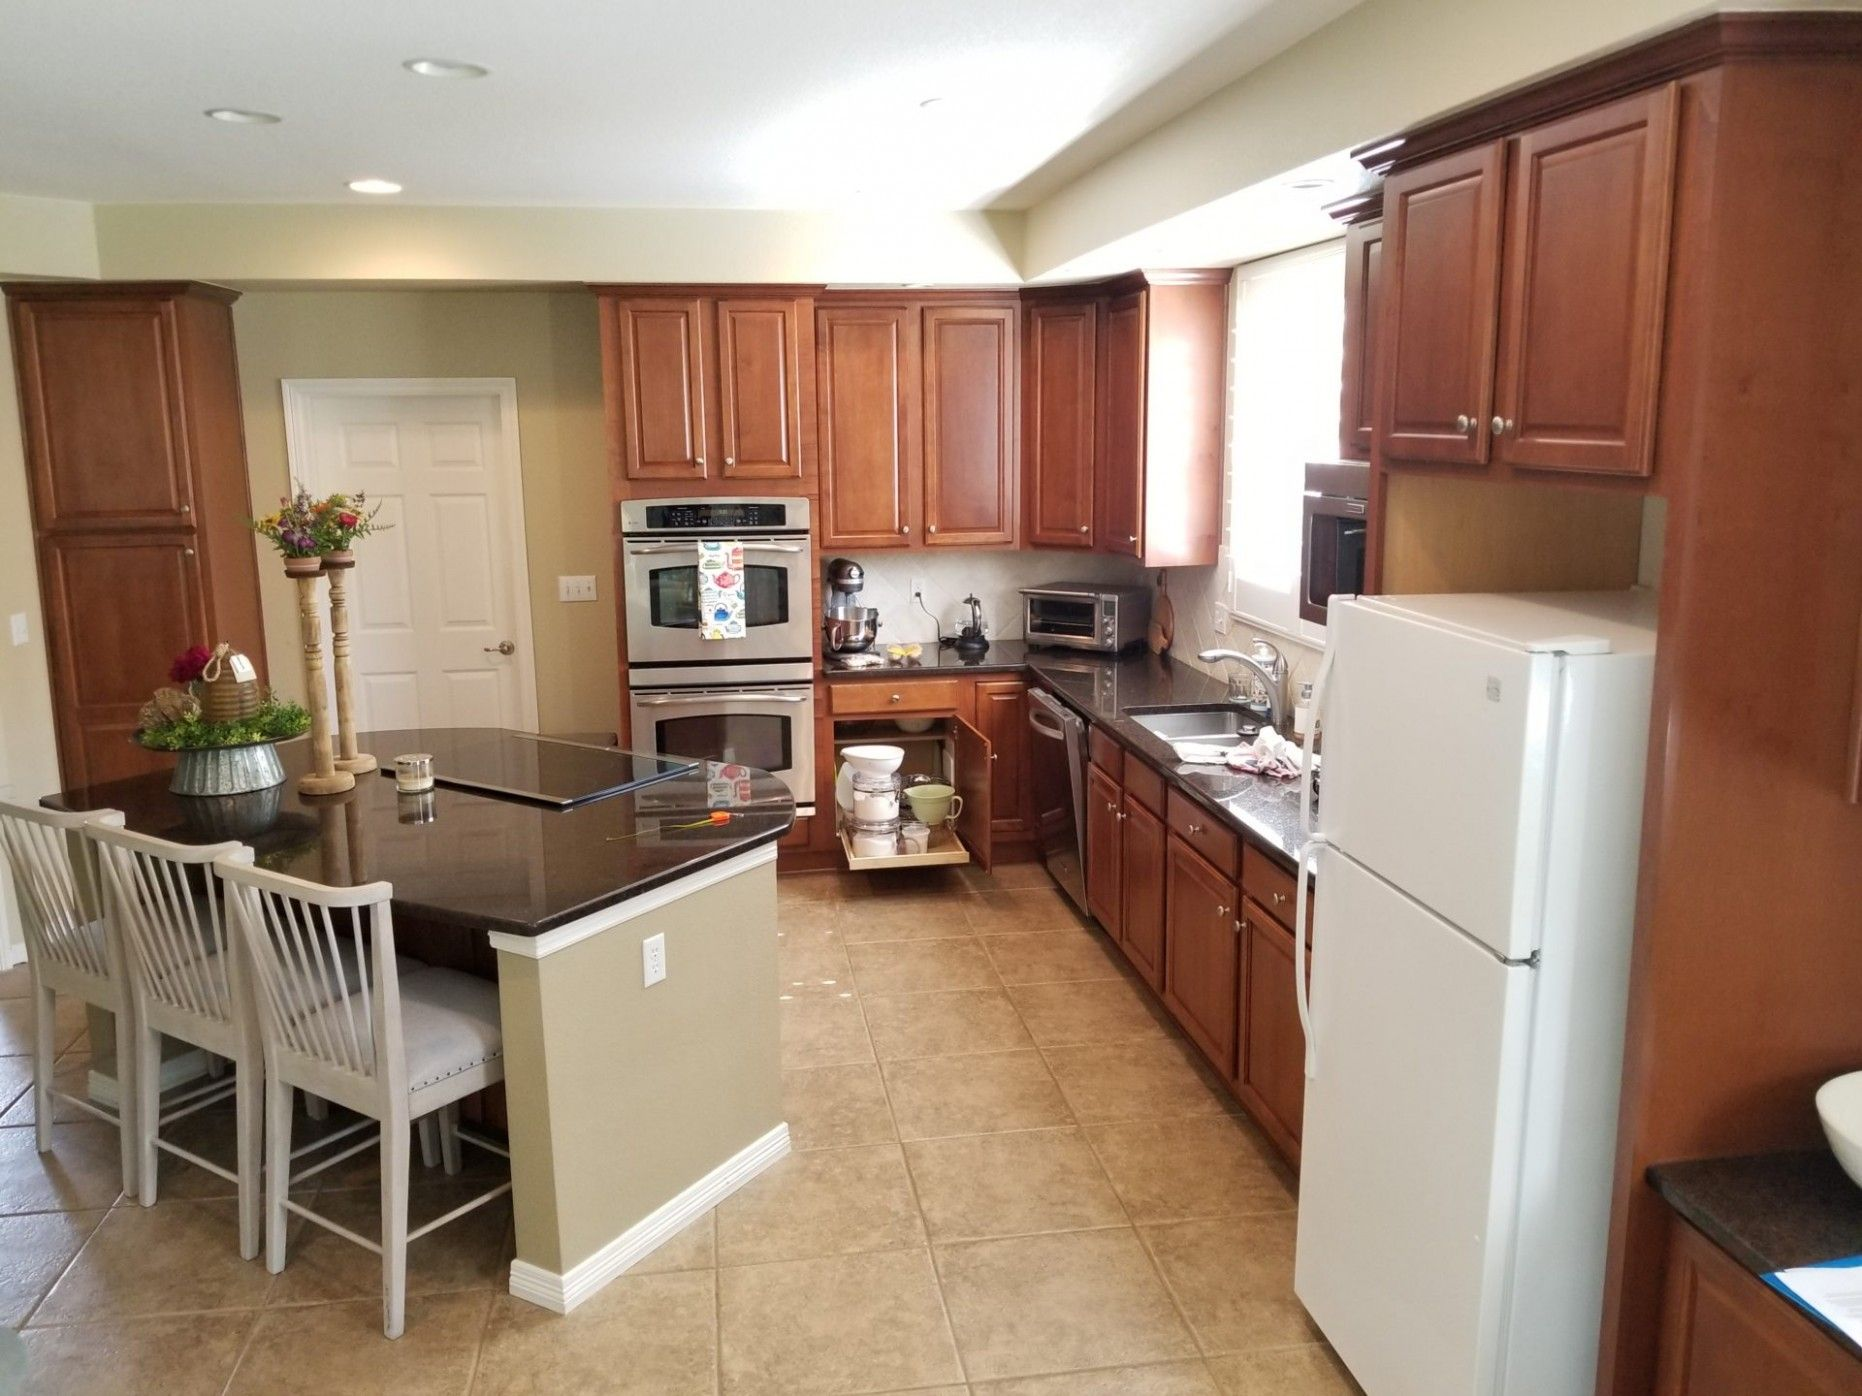 Maple Kitchen Cabinet And Wall Color Inspirational J K Traditional Maple Wood Cabinet In 2020 Kitchen Cabinet Design Maple Kitchen Cabinets Granite Countertops Kitchen